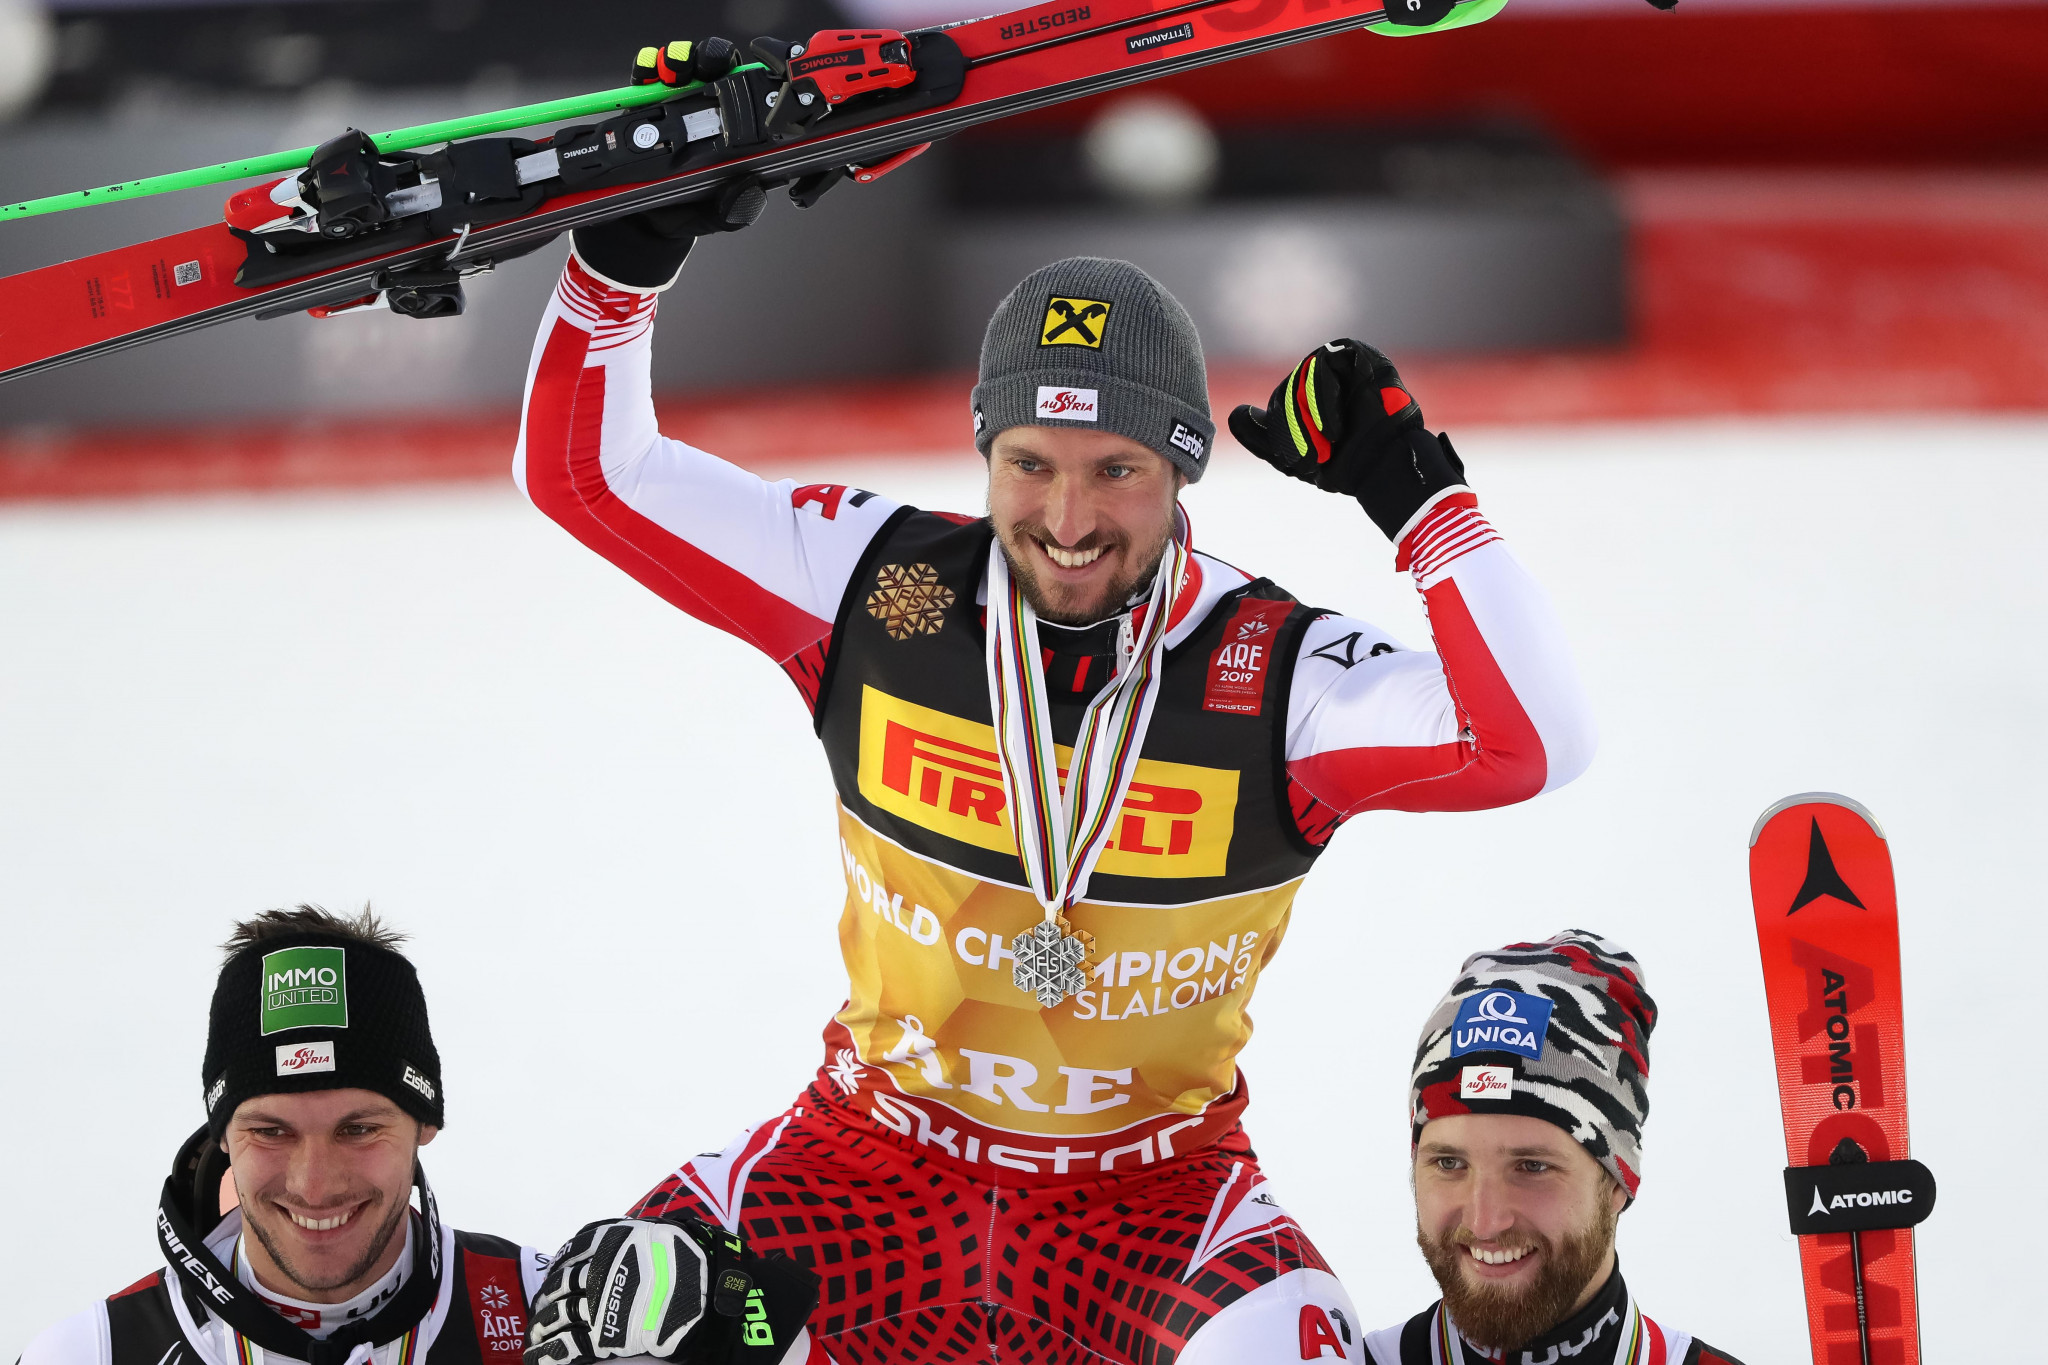 Marcel Hirscher won the men's slalom world title for the third time in his career ©Getty Images